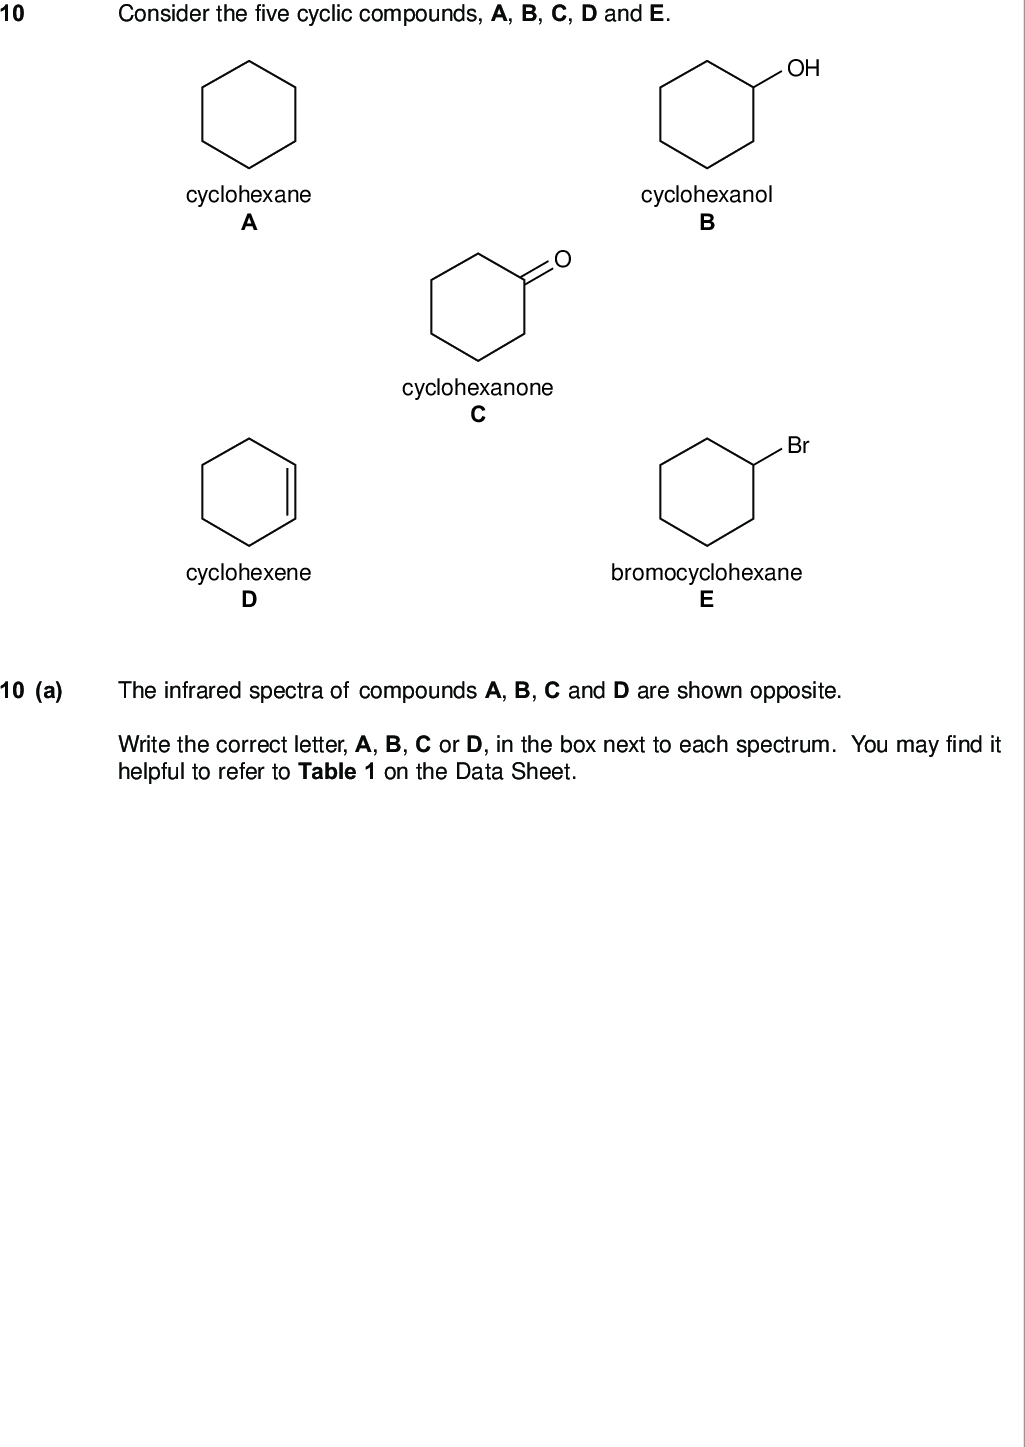 consider the five cyclic compounds a b c d and e do not write outside the box cyclohexane cyclohexanol cyclohexanone oh br cyclohexene bromocyclohexane a the infrared spectra of compounds a b c and d are shown opposite write the correct letter a b c or d in the box next to each spectrum you may find it helpful to refer to table on the data sheet wmp jan chem do not write outside the box a i transmittance wavenumber cm mark a ii transmittance wavenumber cm mark a iii transmittance a iv transmittance wavenumber cm mark wavenumber cm question continues on the next page mark turn over wmp jan chem do not write outside the box b a simple chemical test can be used to distinguish between cyclohexane a and cyclohexene d give a reagent for this test and state what you would observe with each compound marks extra space c cyclohexanol b can be converted into cyclohexanone c give a reagent or combination of reagents that can be used for this reaction and state the type of reaction state the class of alcohols to which cyclohexanol belongs marks extra space wmp jan chem d cyclohexane a can be converted into bromocyclohexane e by a reaction that is similar to the reaction of methane either with chlorine or with bromine do not write outside the box name and outline a mechanism for the reaction of methane ch with bromine to form bromomethane ch br give one condition for this reaction to occur write an equation for each step in your mechanism marks extra space end of questions wmp jan chem